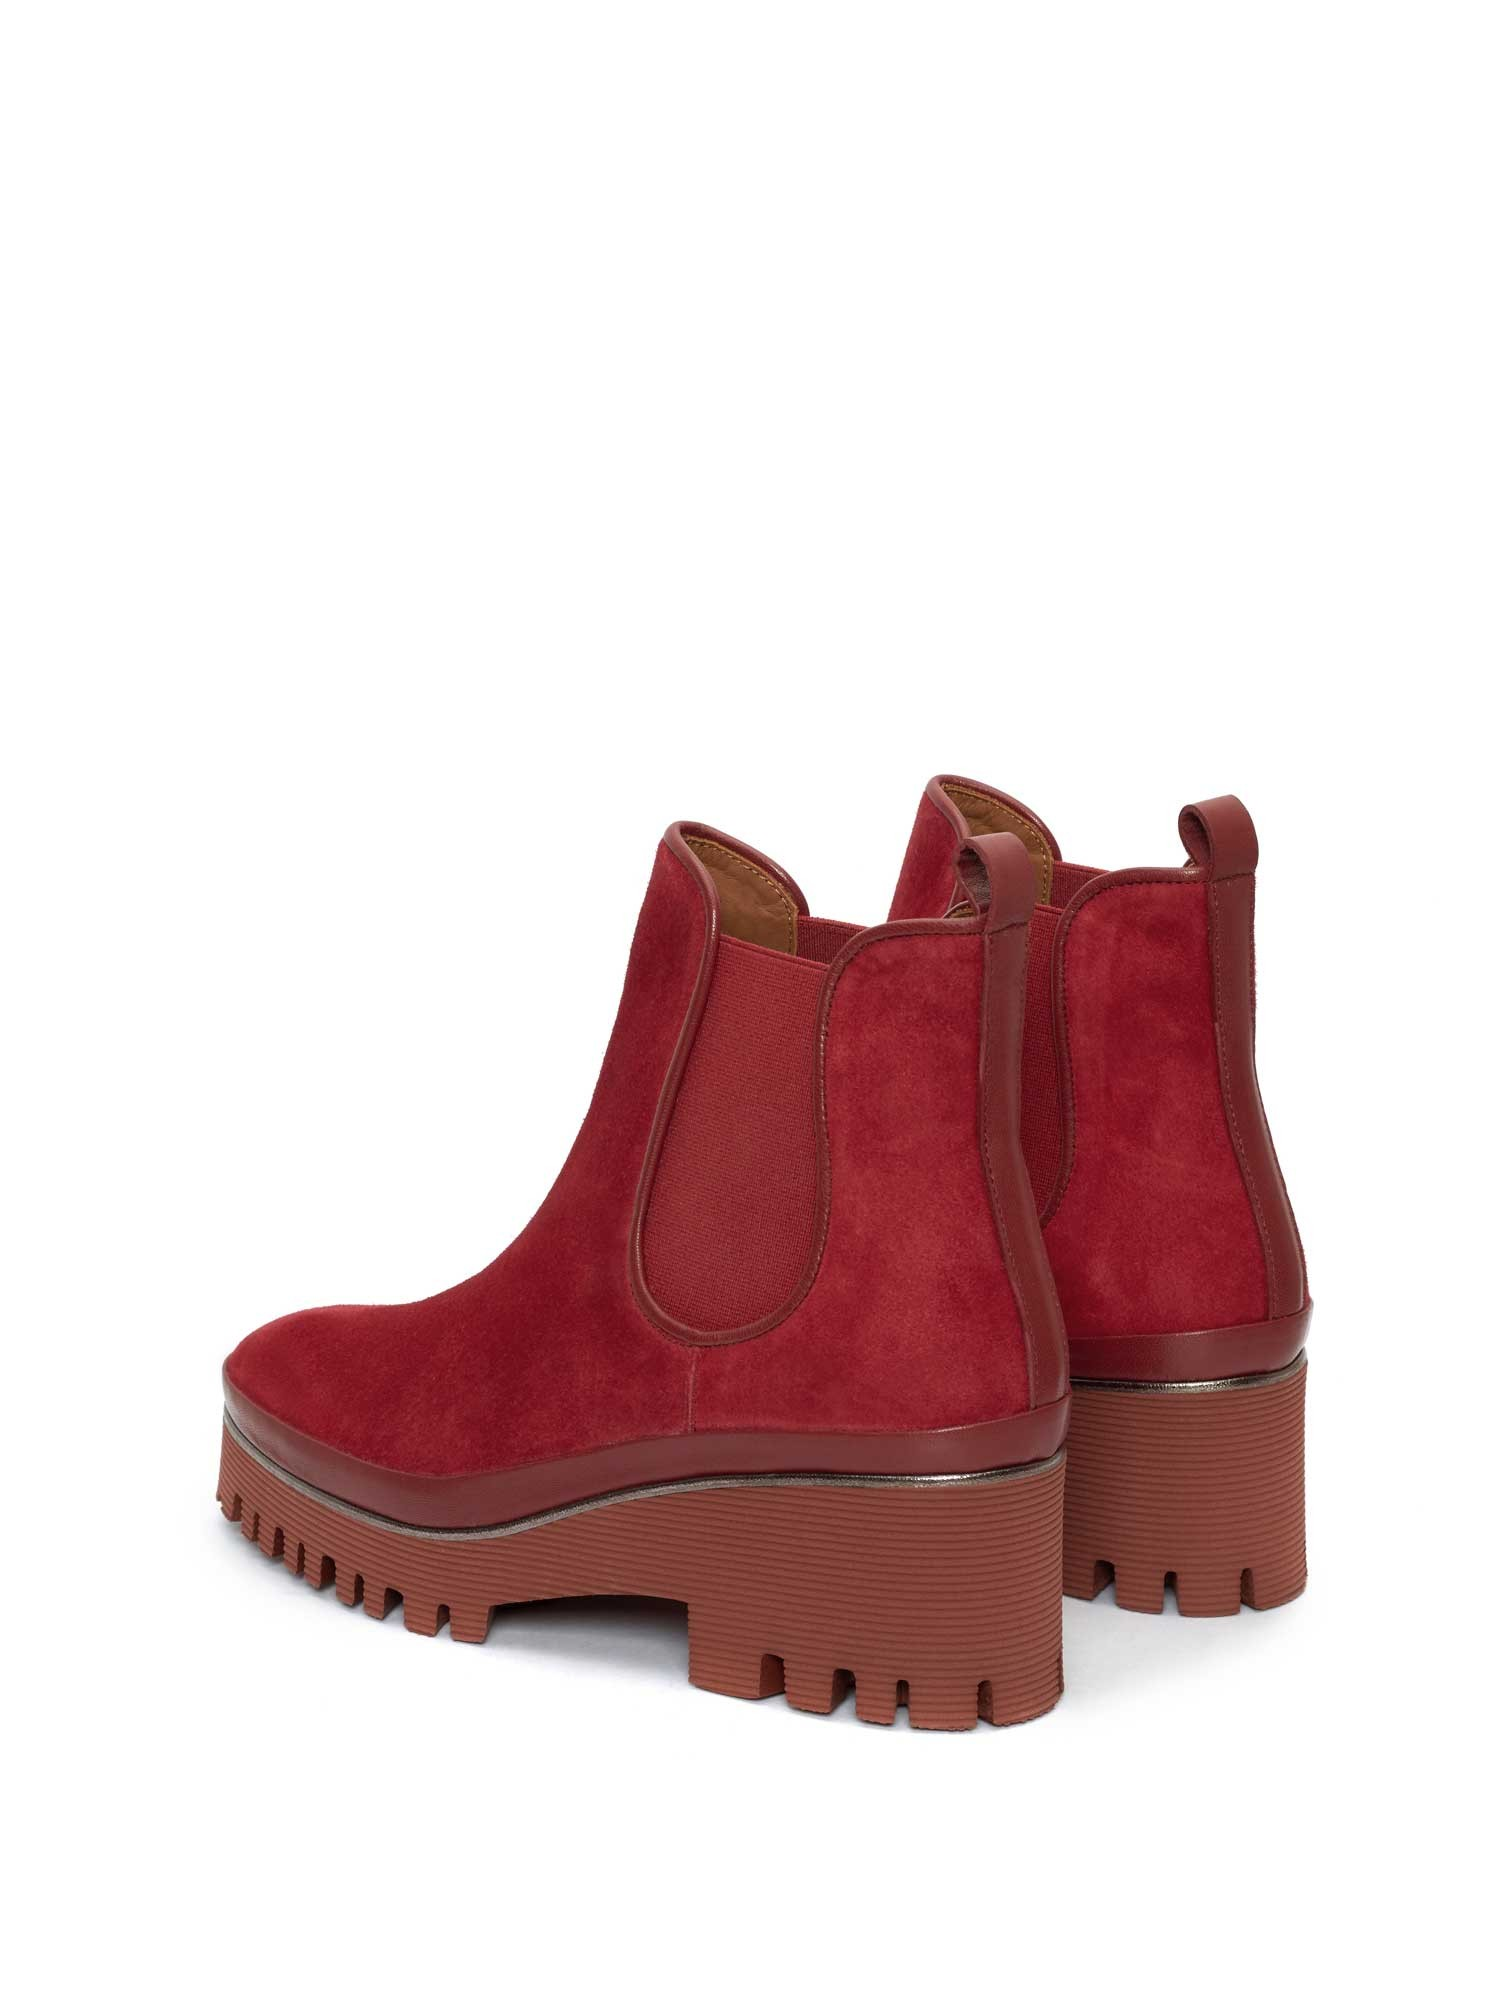 CARMEN VELOUR CHERRY ANKLE BOOT